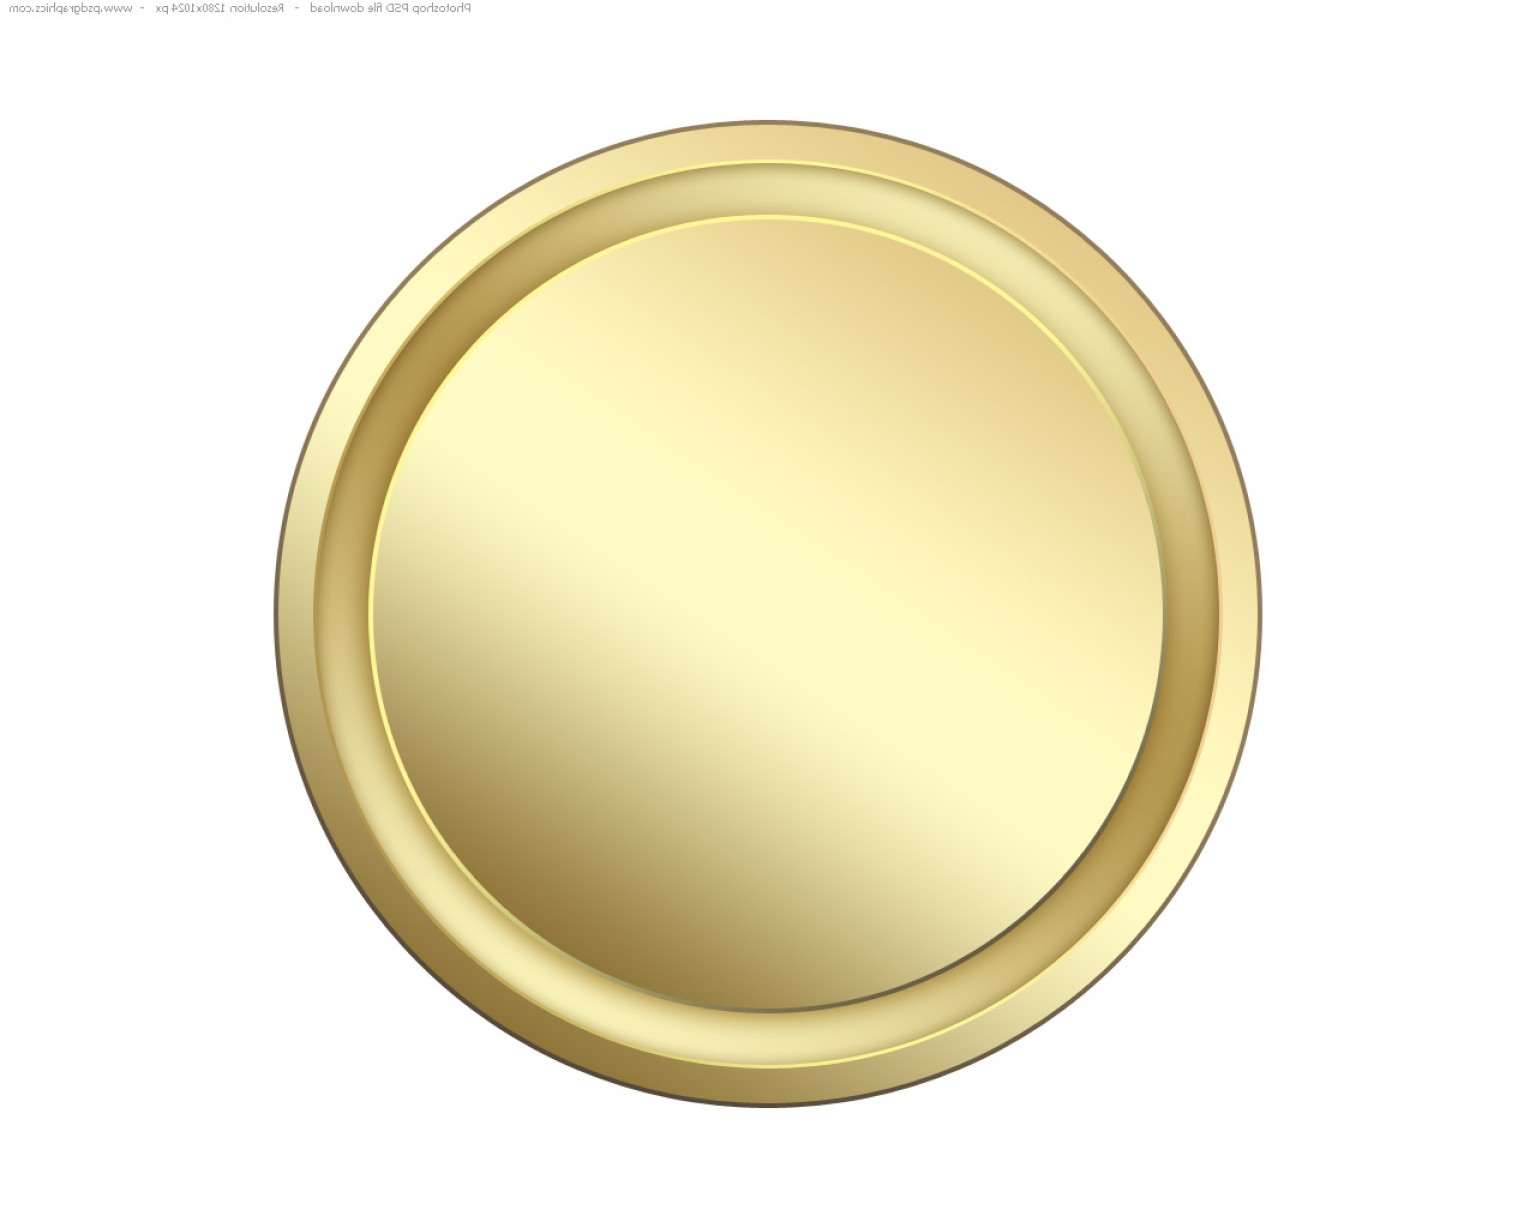 Gold Button Vector: Psd Black And Gold Limited Edition Seals And Buttons